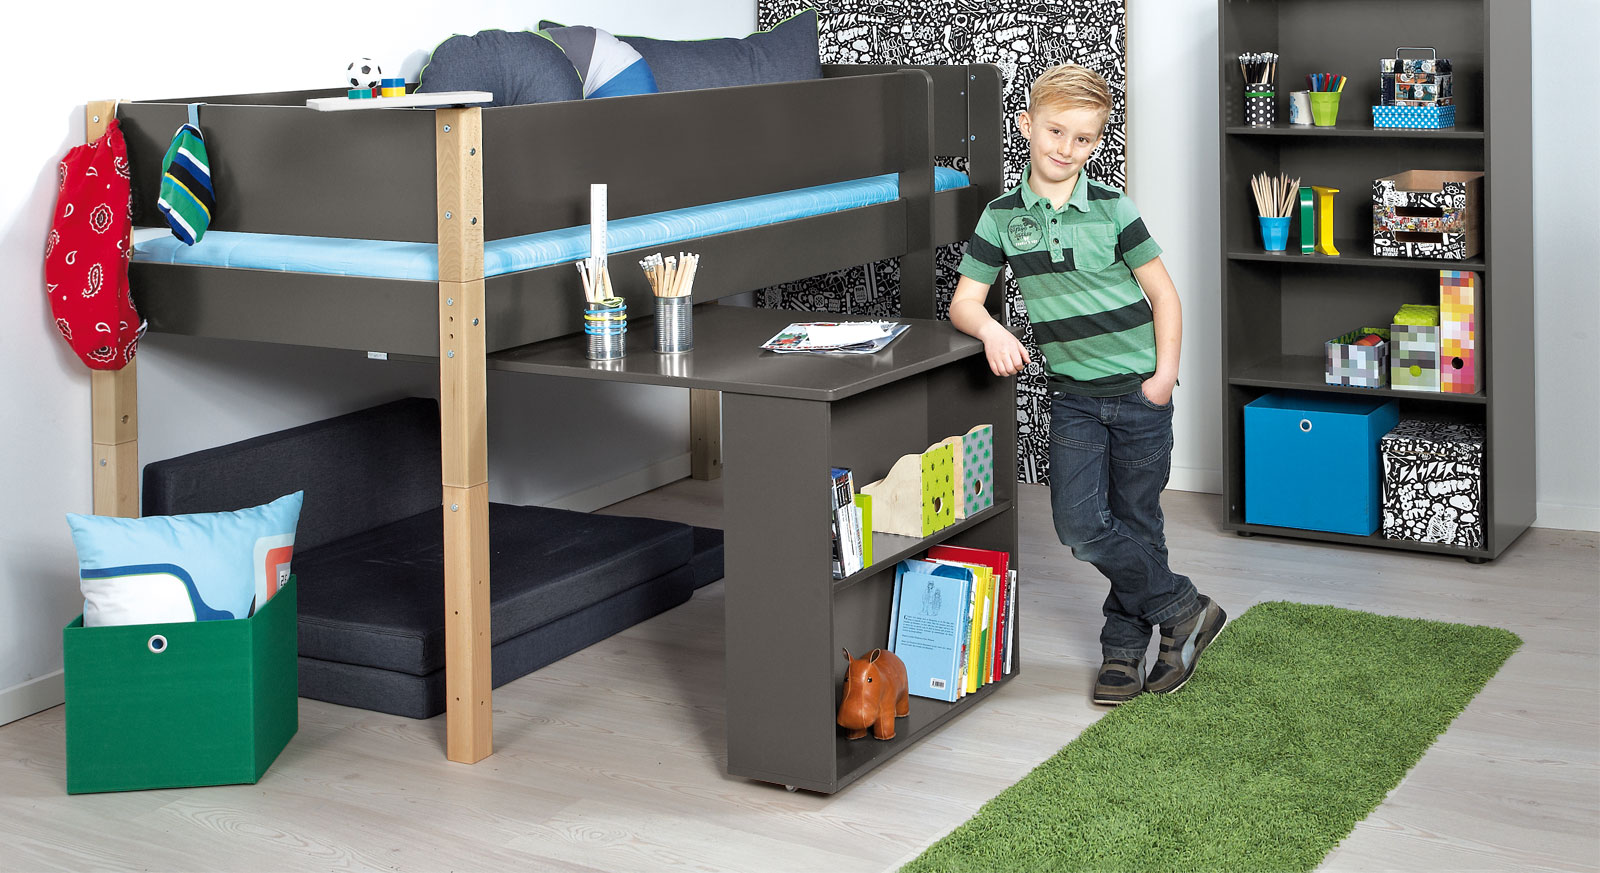 hochbett kids town mit auszieh schreibtisch hier in anthrazit mit. Black Bedroom Furniture Sets. Home Design Ideas